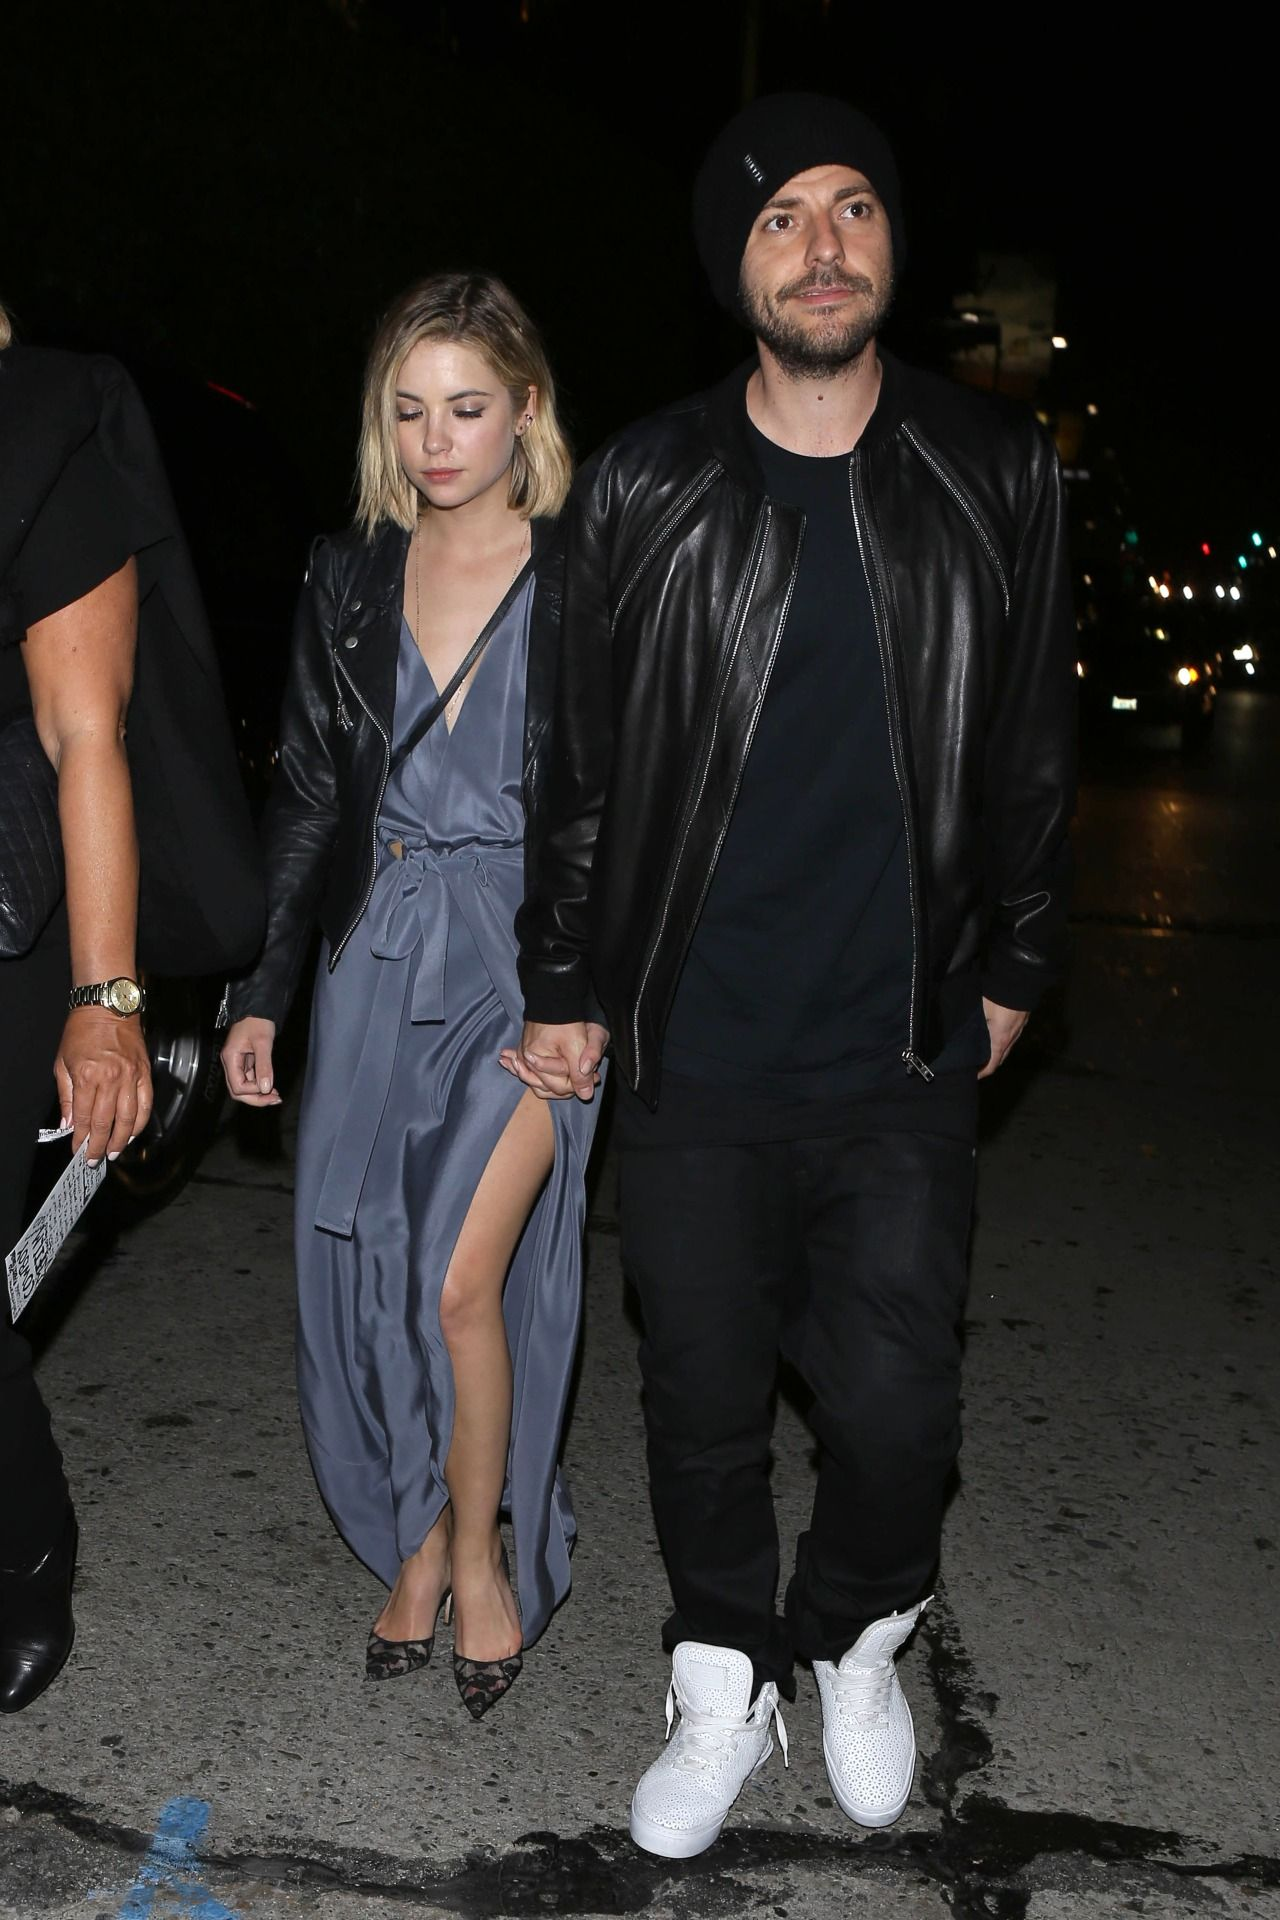 Ashley Benson Night Out Style - at Chateau Marmont, in West Hollywood, February 2015